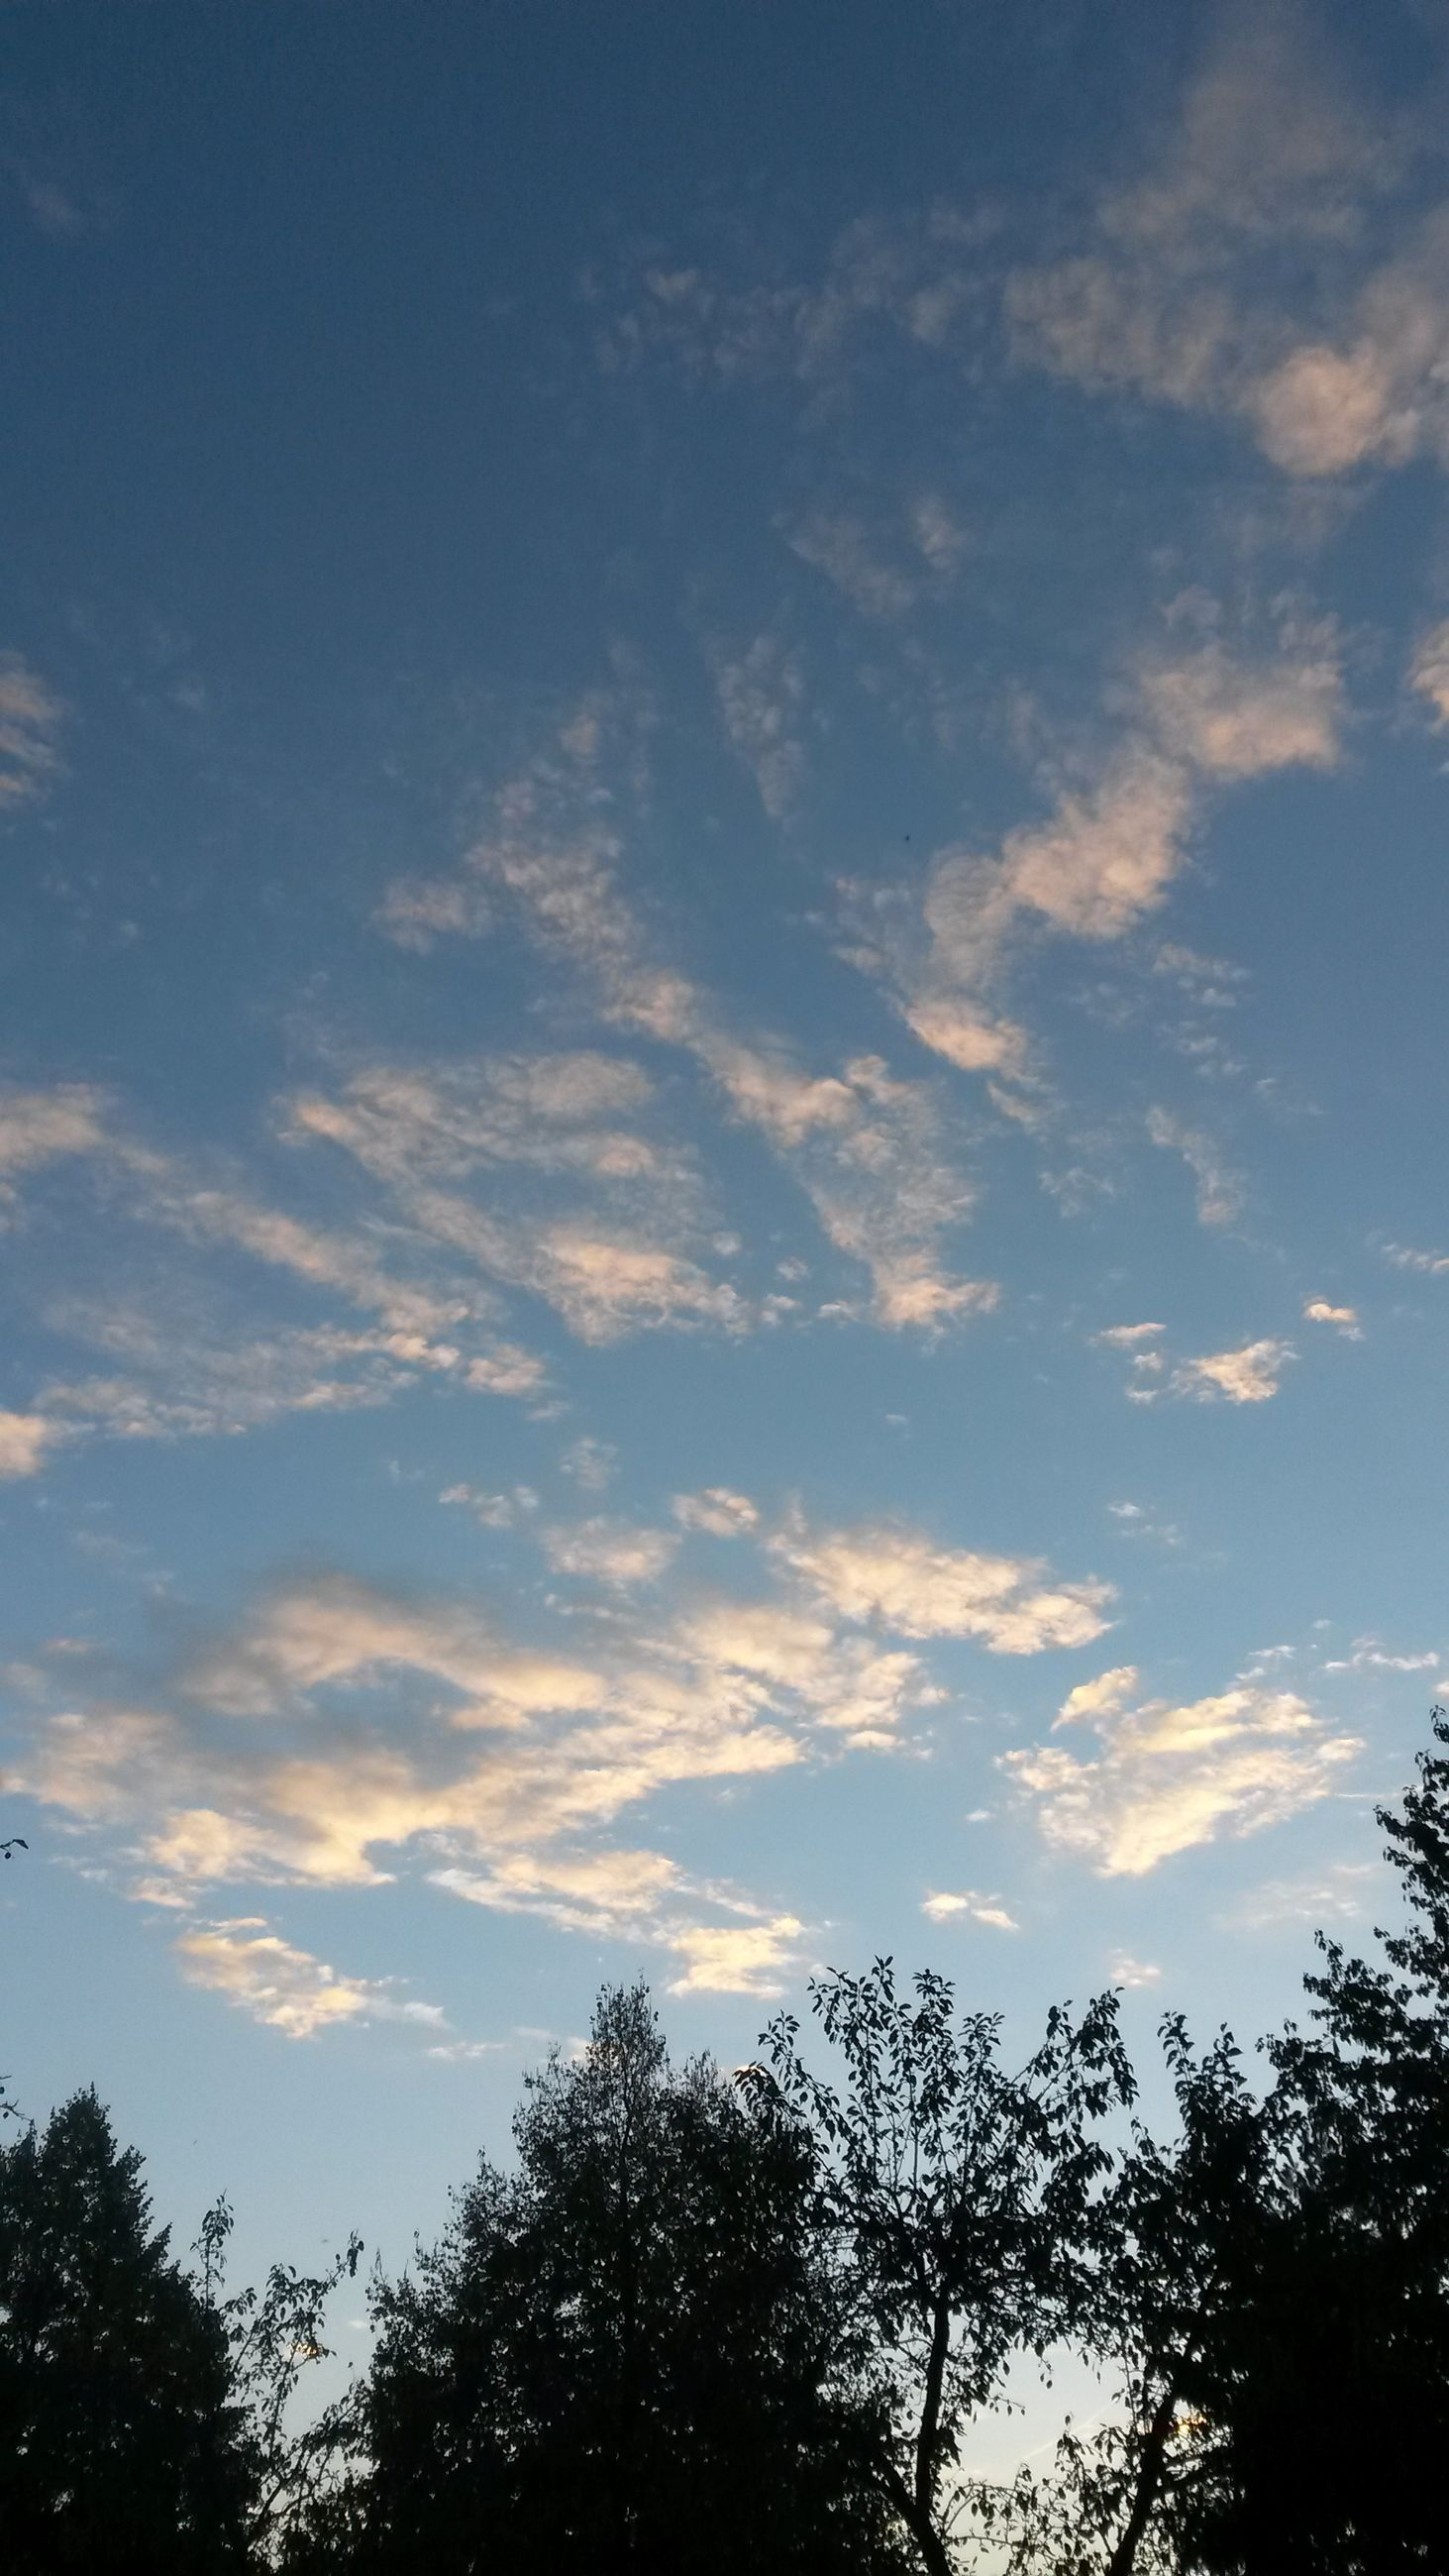 sky, tree, low angle view, tranquility, cloud - sky, beauty in nature, tranquil scene, scenics, cloud, nature, blue, cloudy, growth, idyllic, outdoors, no people, day, branch, silhouette, sunlight